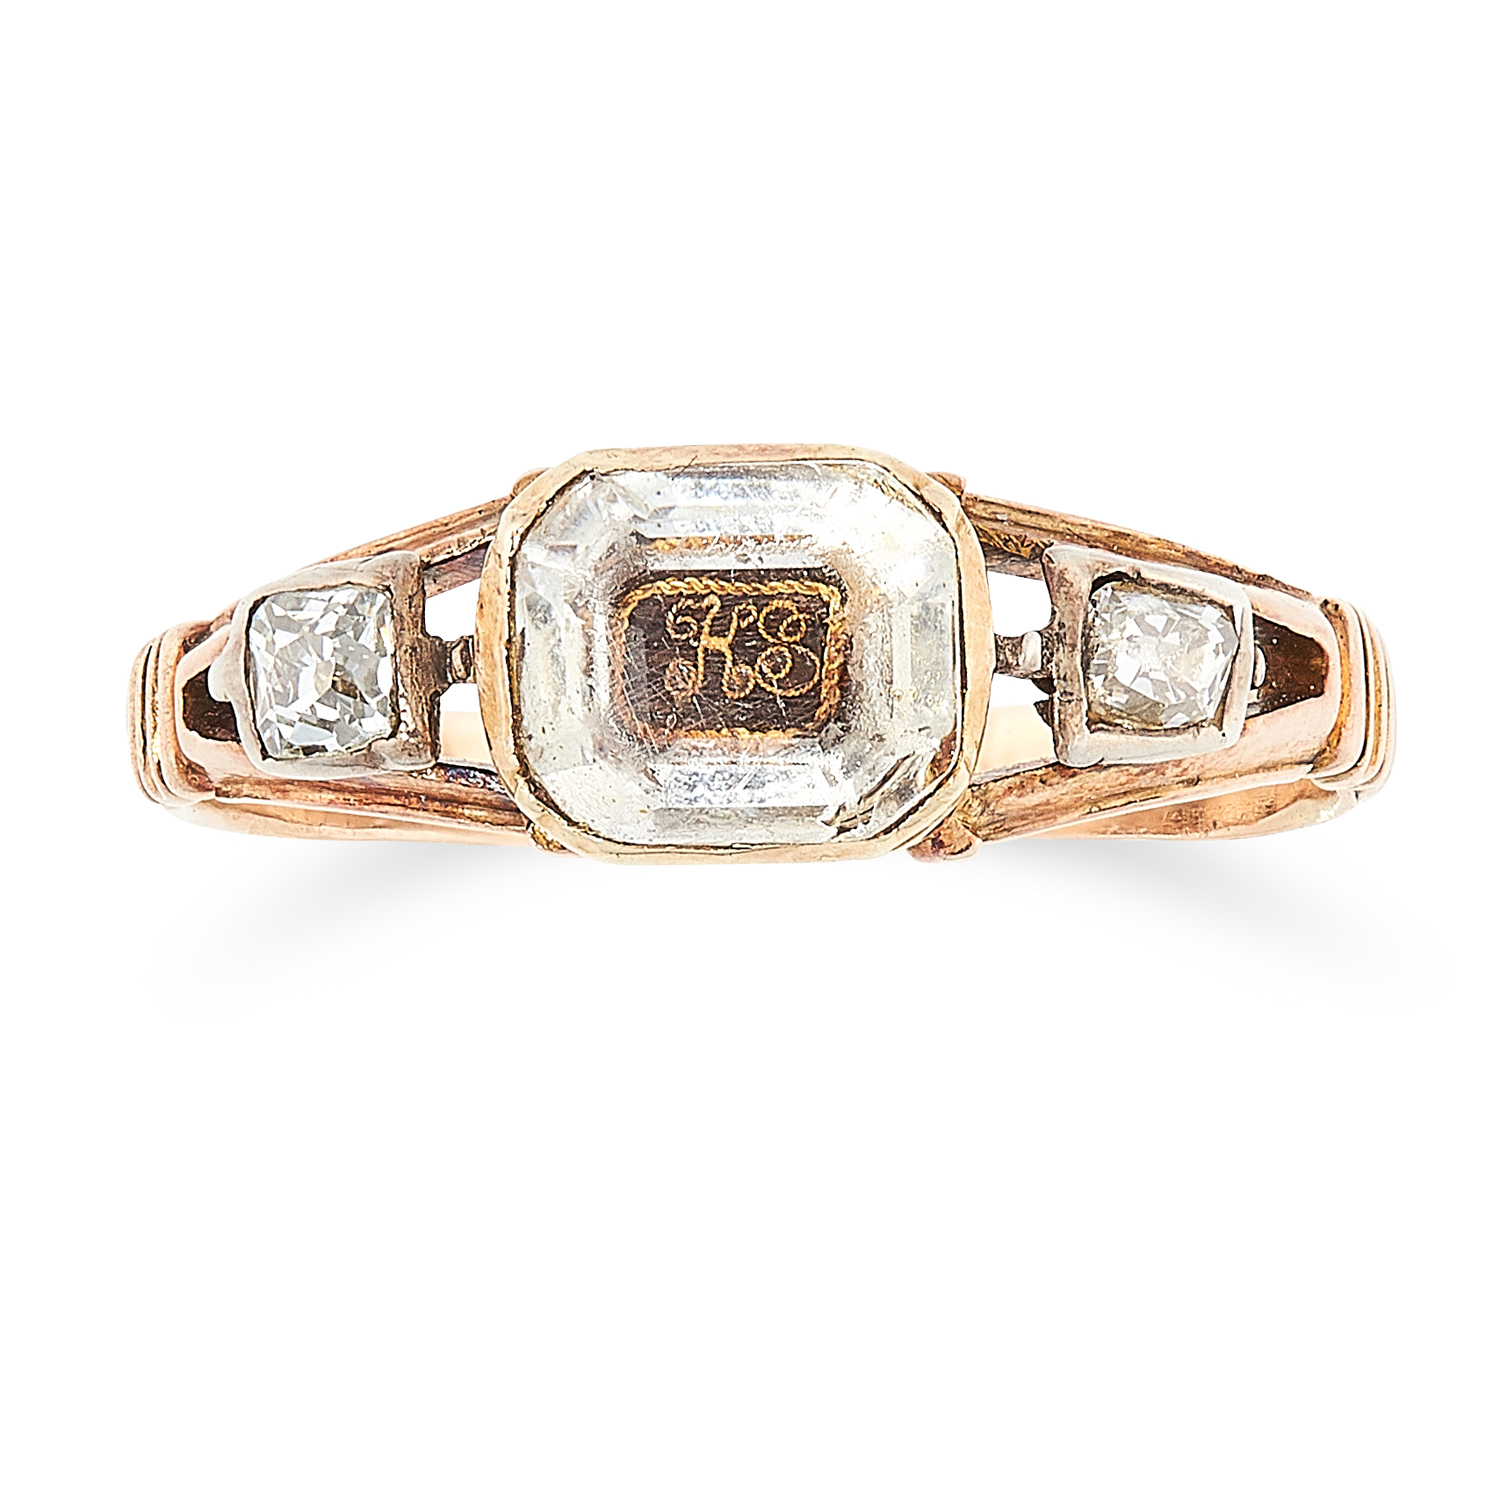 AN ANTIQUE STUART CRYSTAL AND DIAMOND MOURNING RING, 18TH CENTURY in high carat yellow gold, set